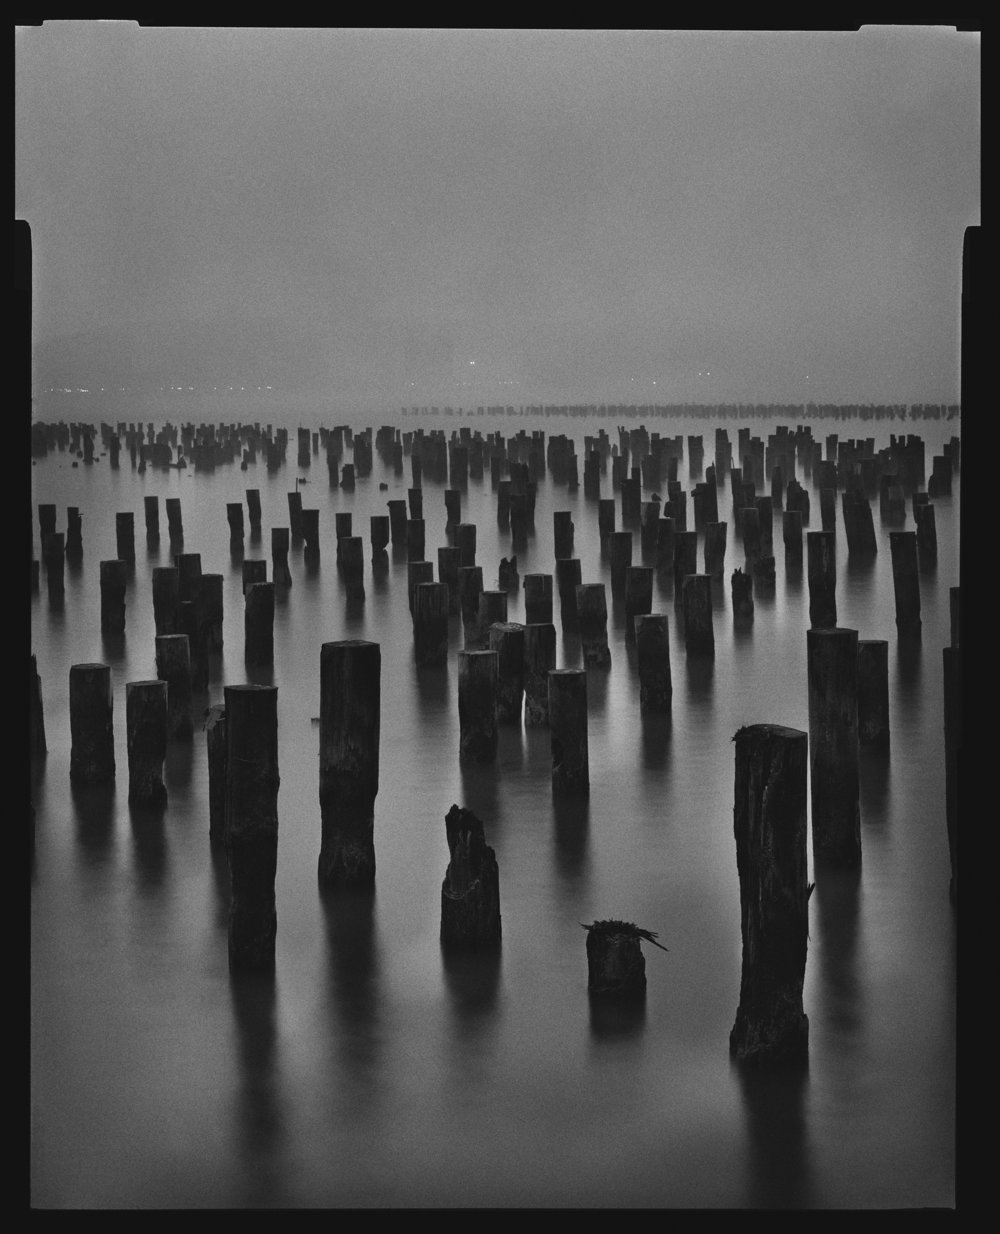 Piers, New York, NY, 2007